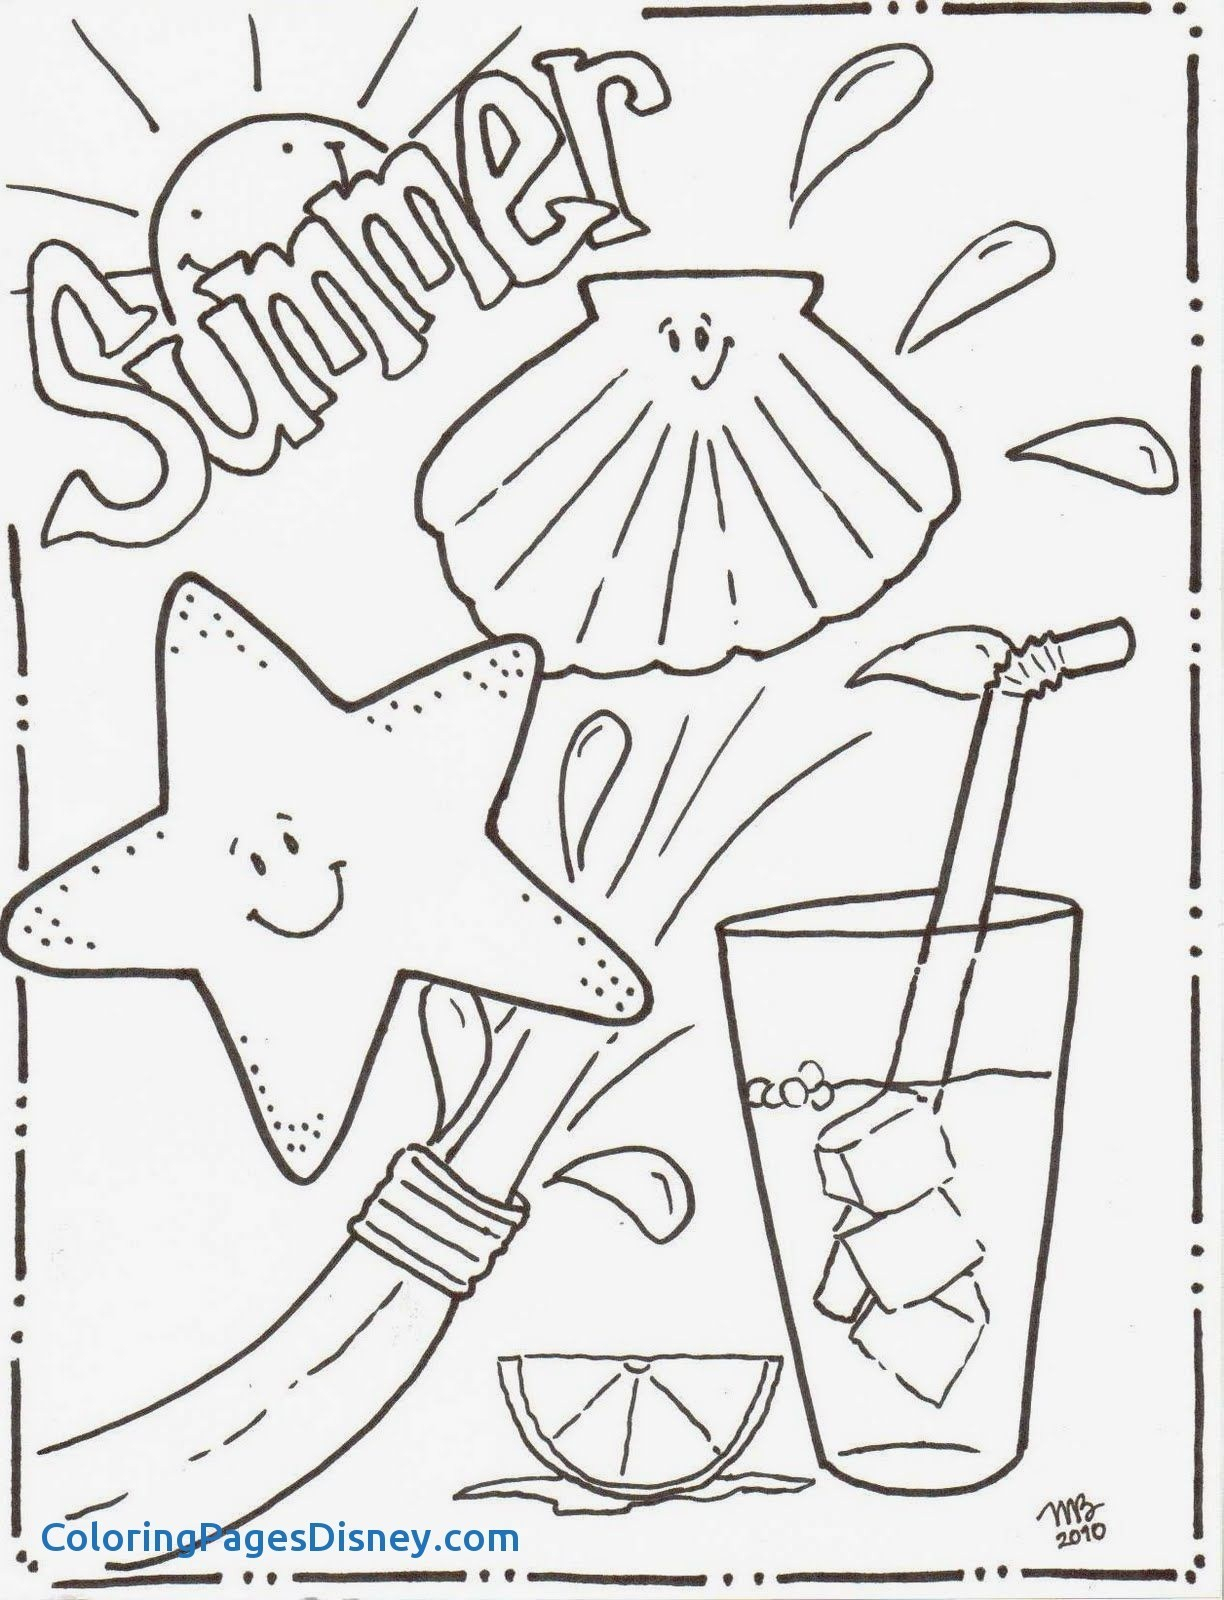 Coloring Ideas : Summer Coloring Pages Best Summertime Sheets Of - Free Printable Summer Coloring Pages